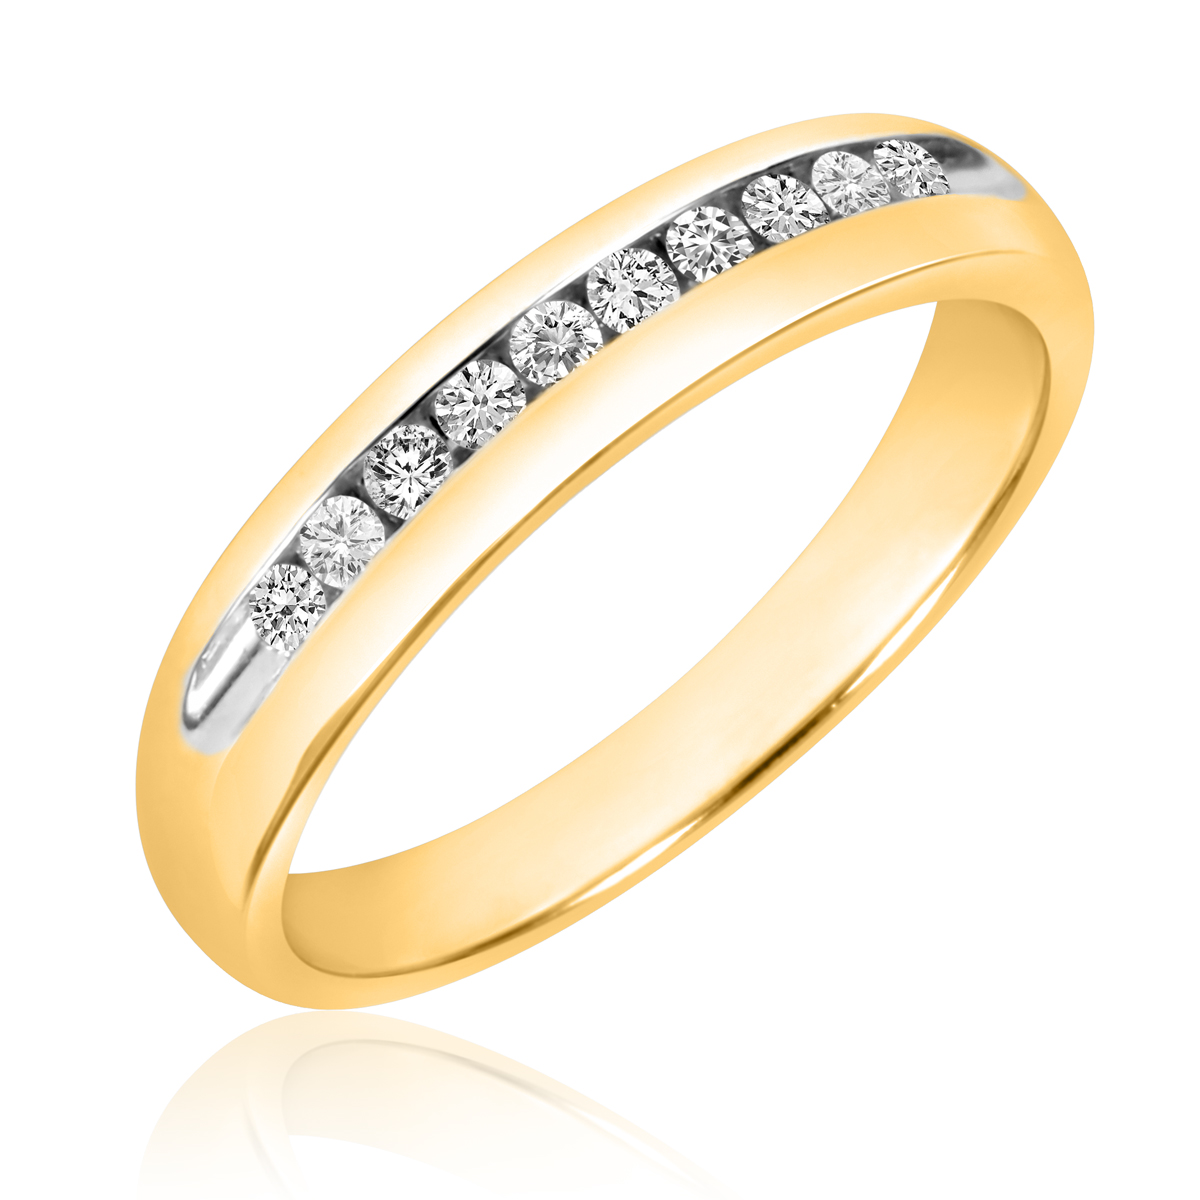 1/4 CT. T.W. Round Cut Diamond Men's Wedding Band 10K Yellow Gold- Size 8